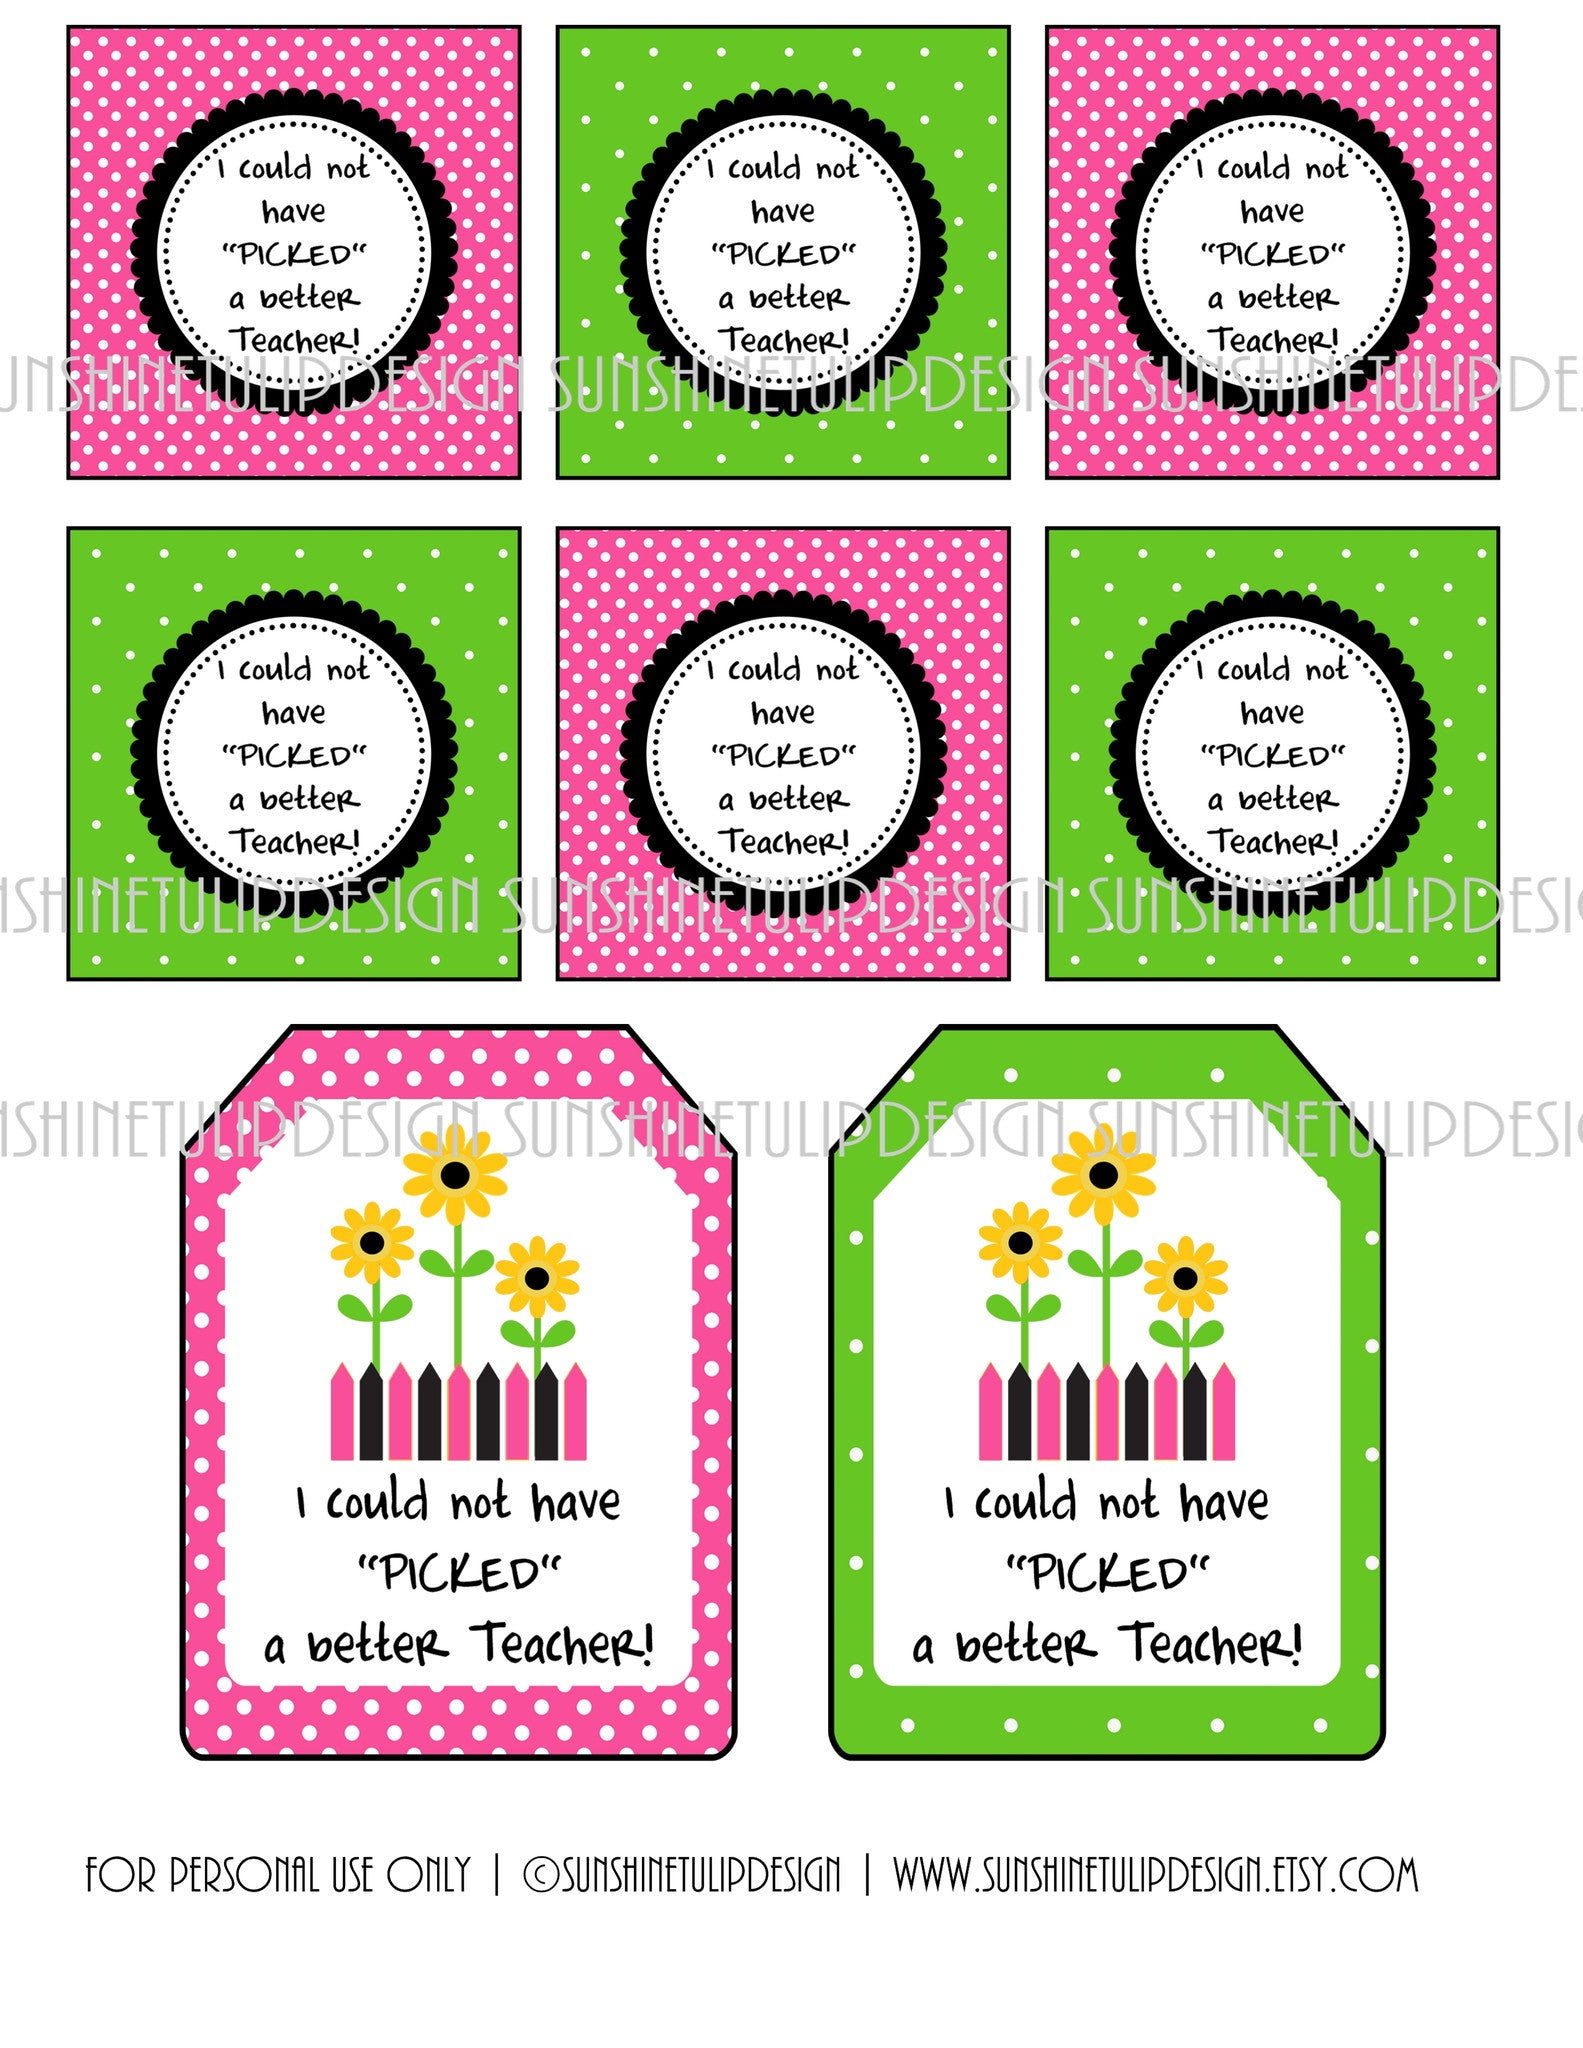 photograph about Teacher Appreciation Tags Printable identify Printable Instructor Appreciation Present Tags, I may possibly not incorporate Decided on a Much better Instructor Printable Trainer Tags by way of SUNSHINETULIPDESIGN